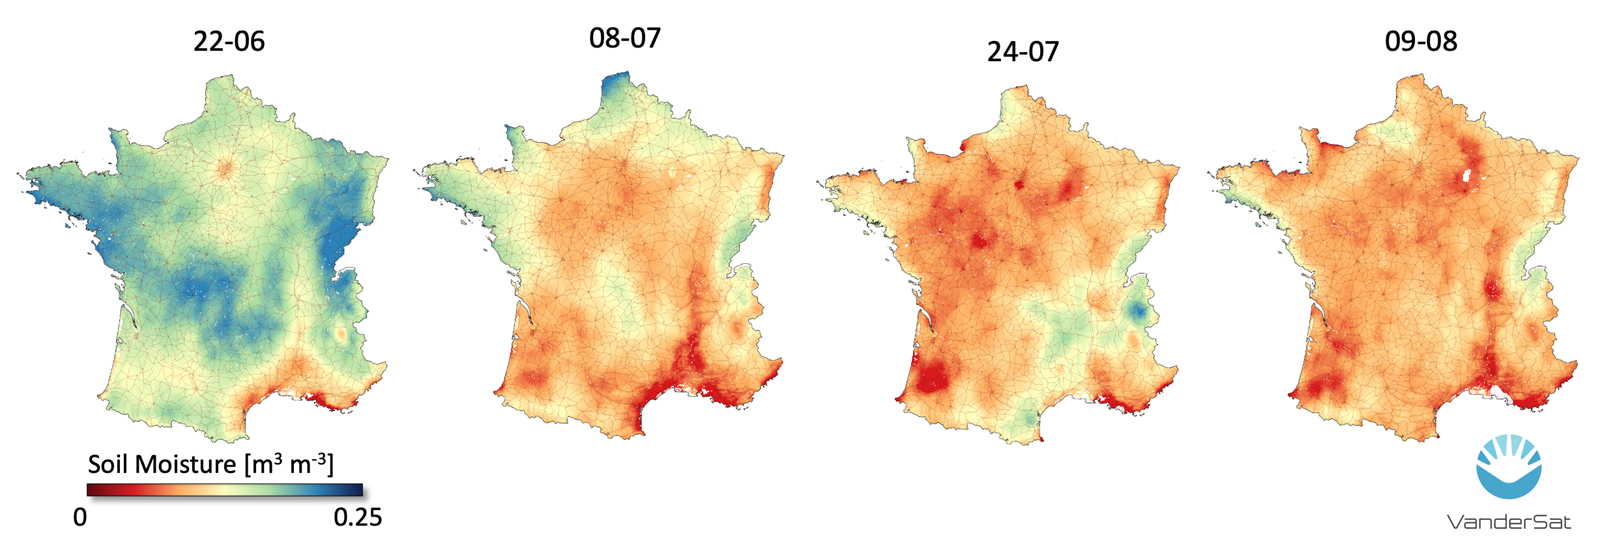 Heat map of France during 4 years.